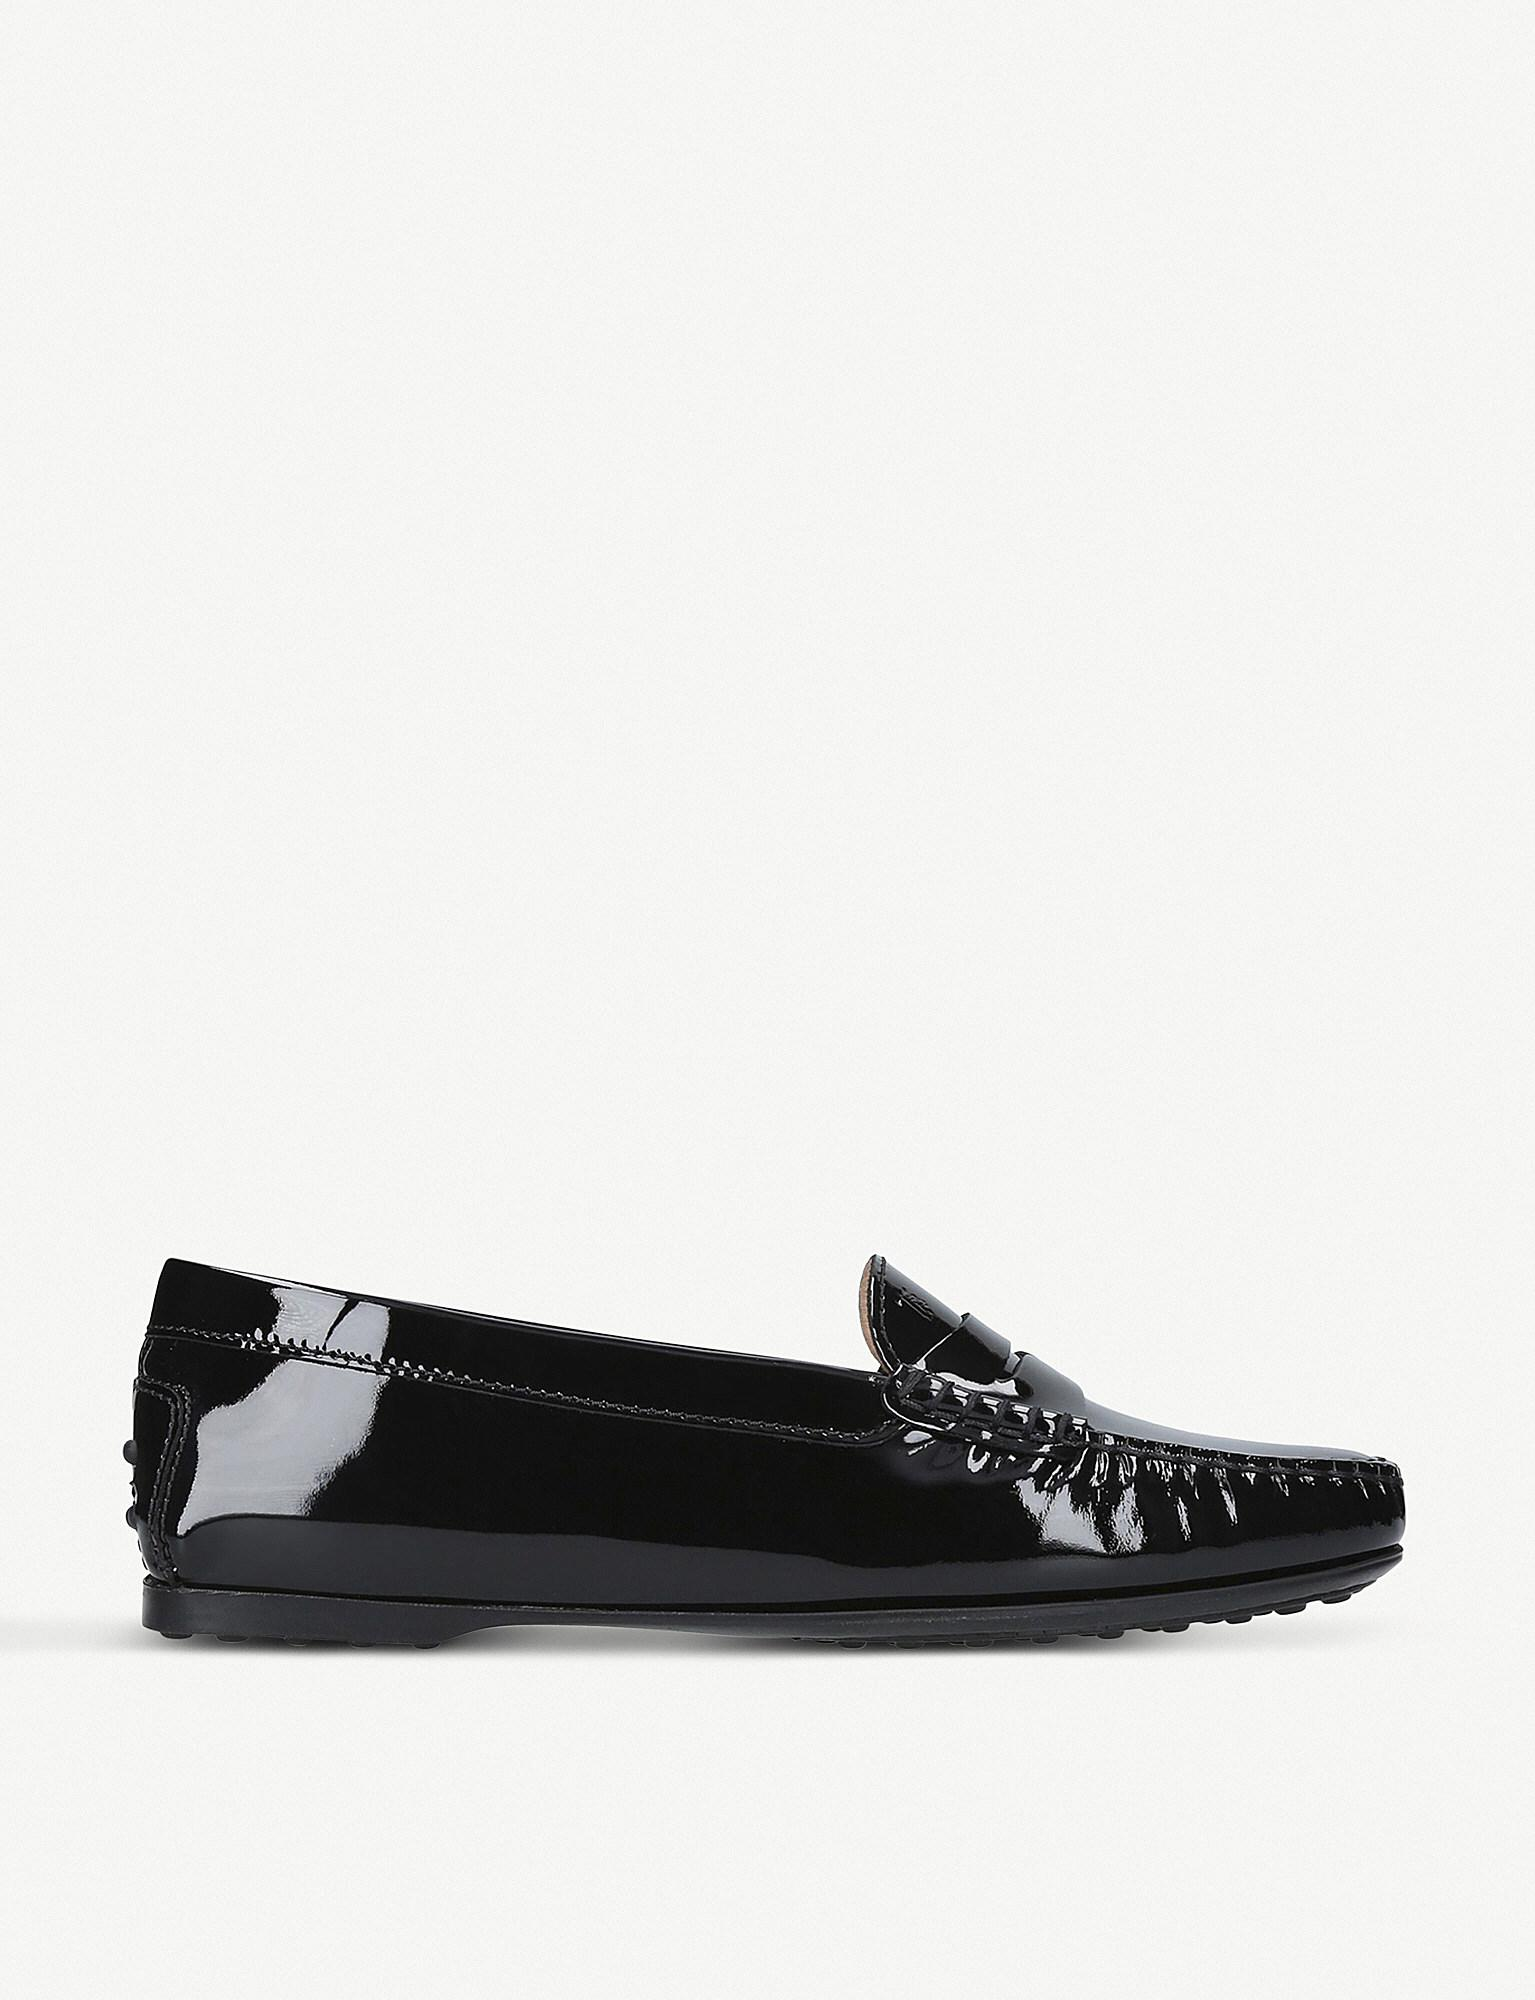 Black TODS Gomma patent leather moccasins